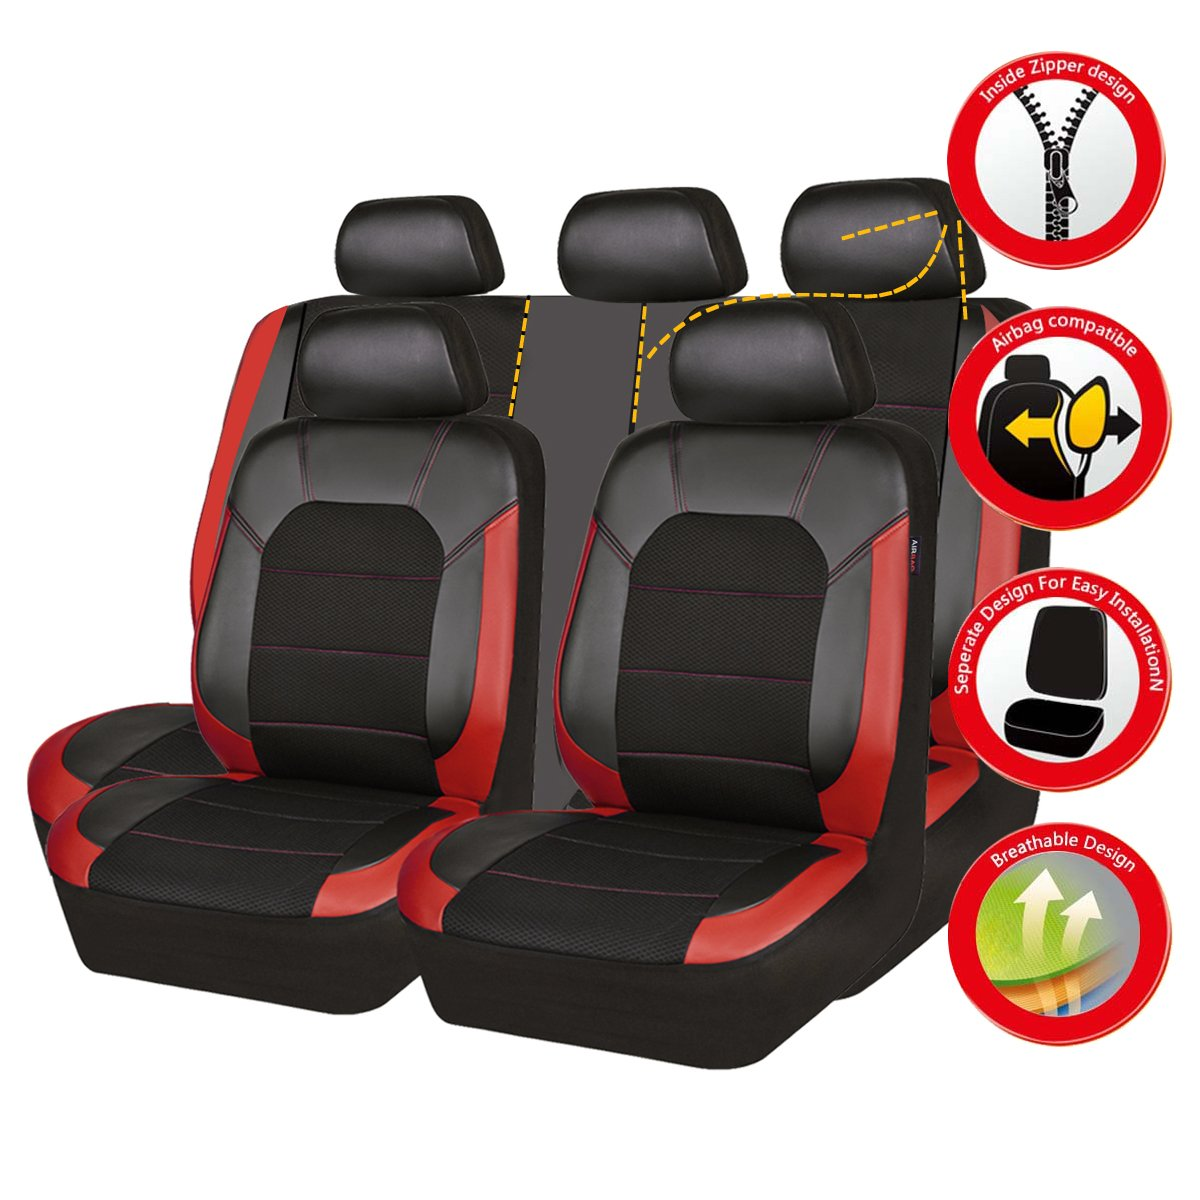 Full seat covers, Black and blue color Trunkcs,Suvs perfect fit for Sedans New Arrival- Car Pass leather and Mesh Universal Car Seat Covers,Airbag Compatible